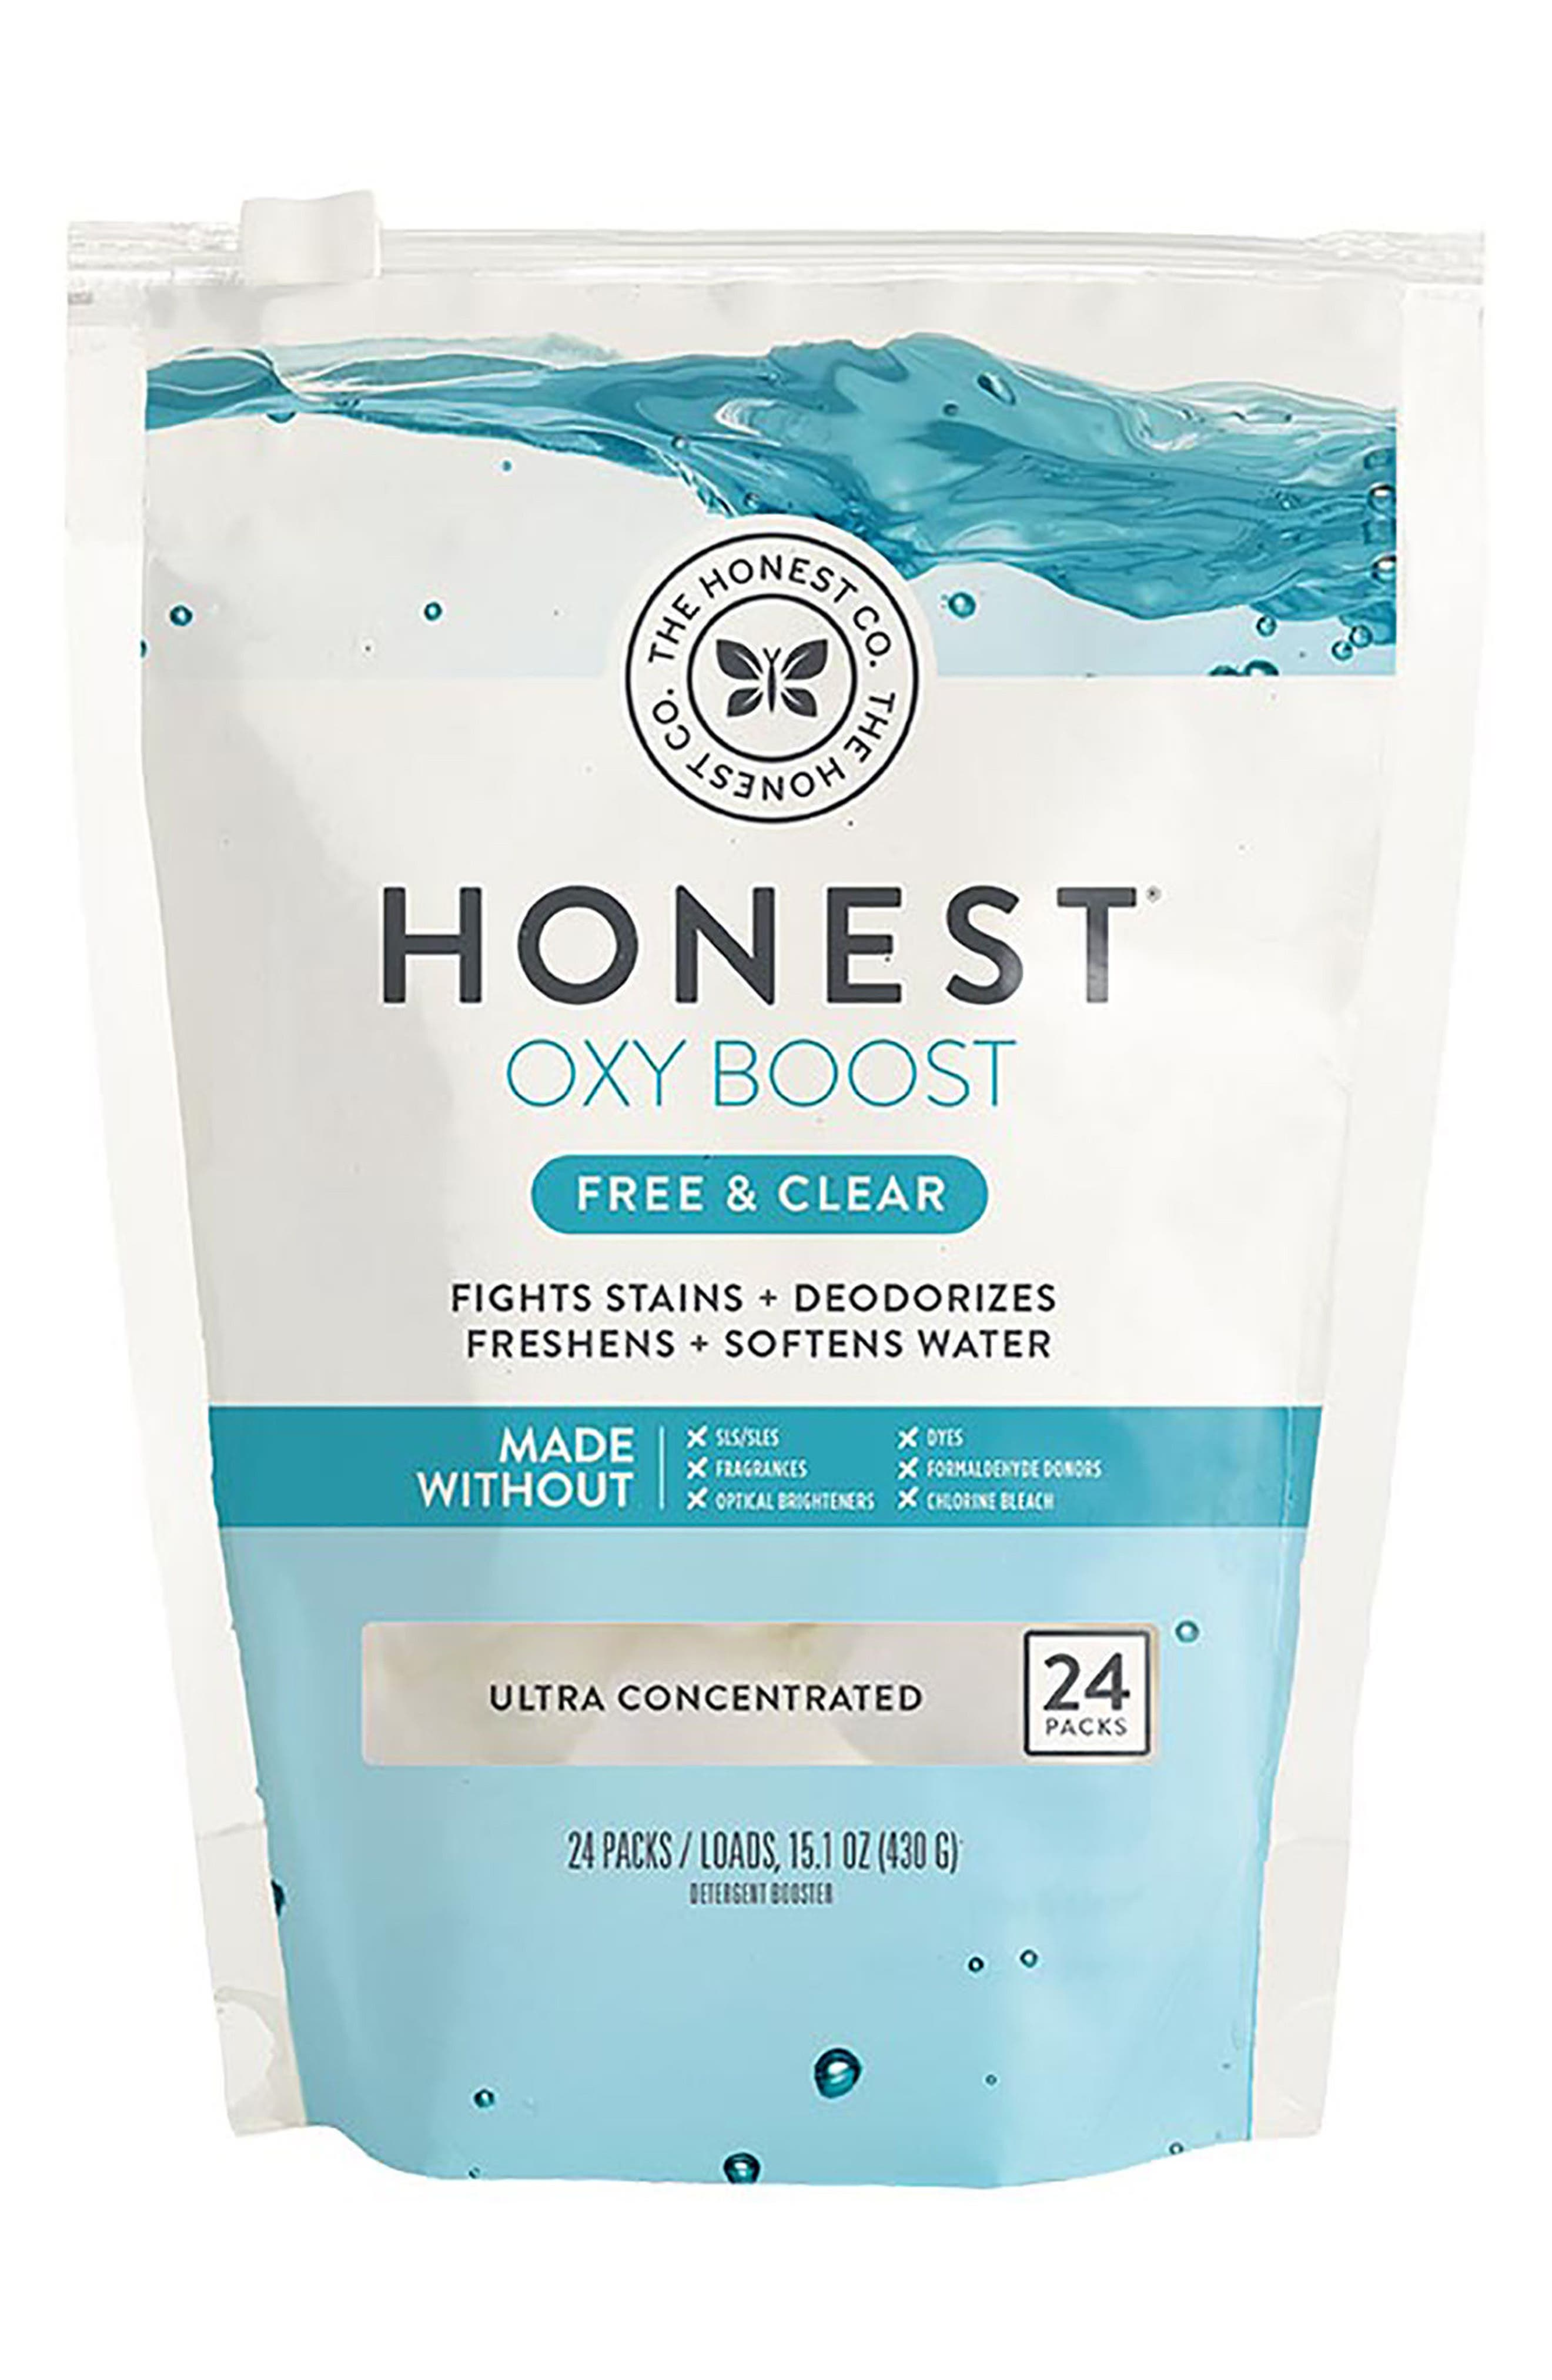 Main Image - The Honest Company Free & Clear Oxy Boost Detergent Booster